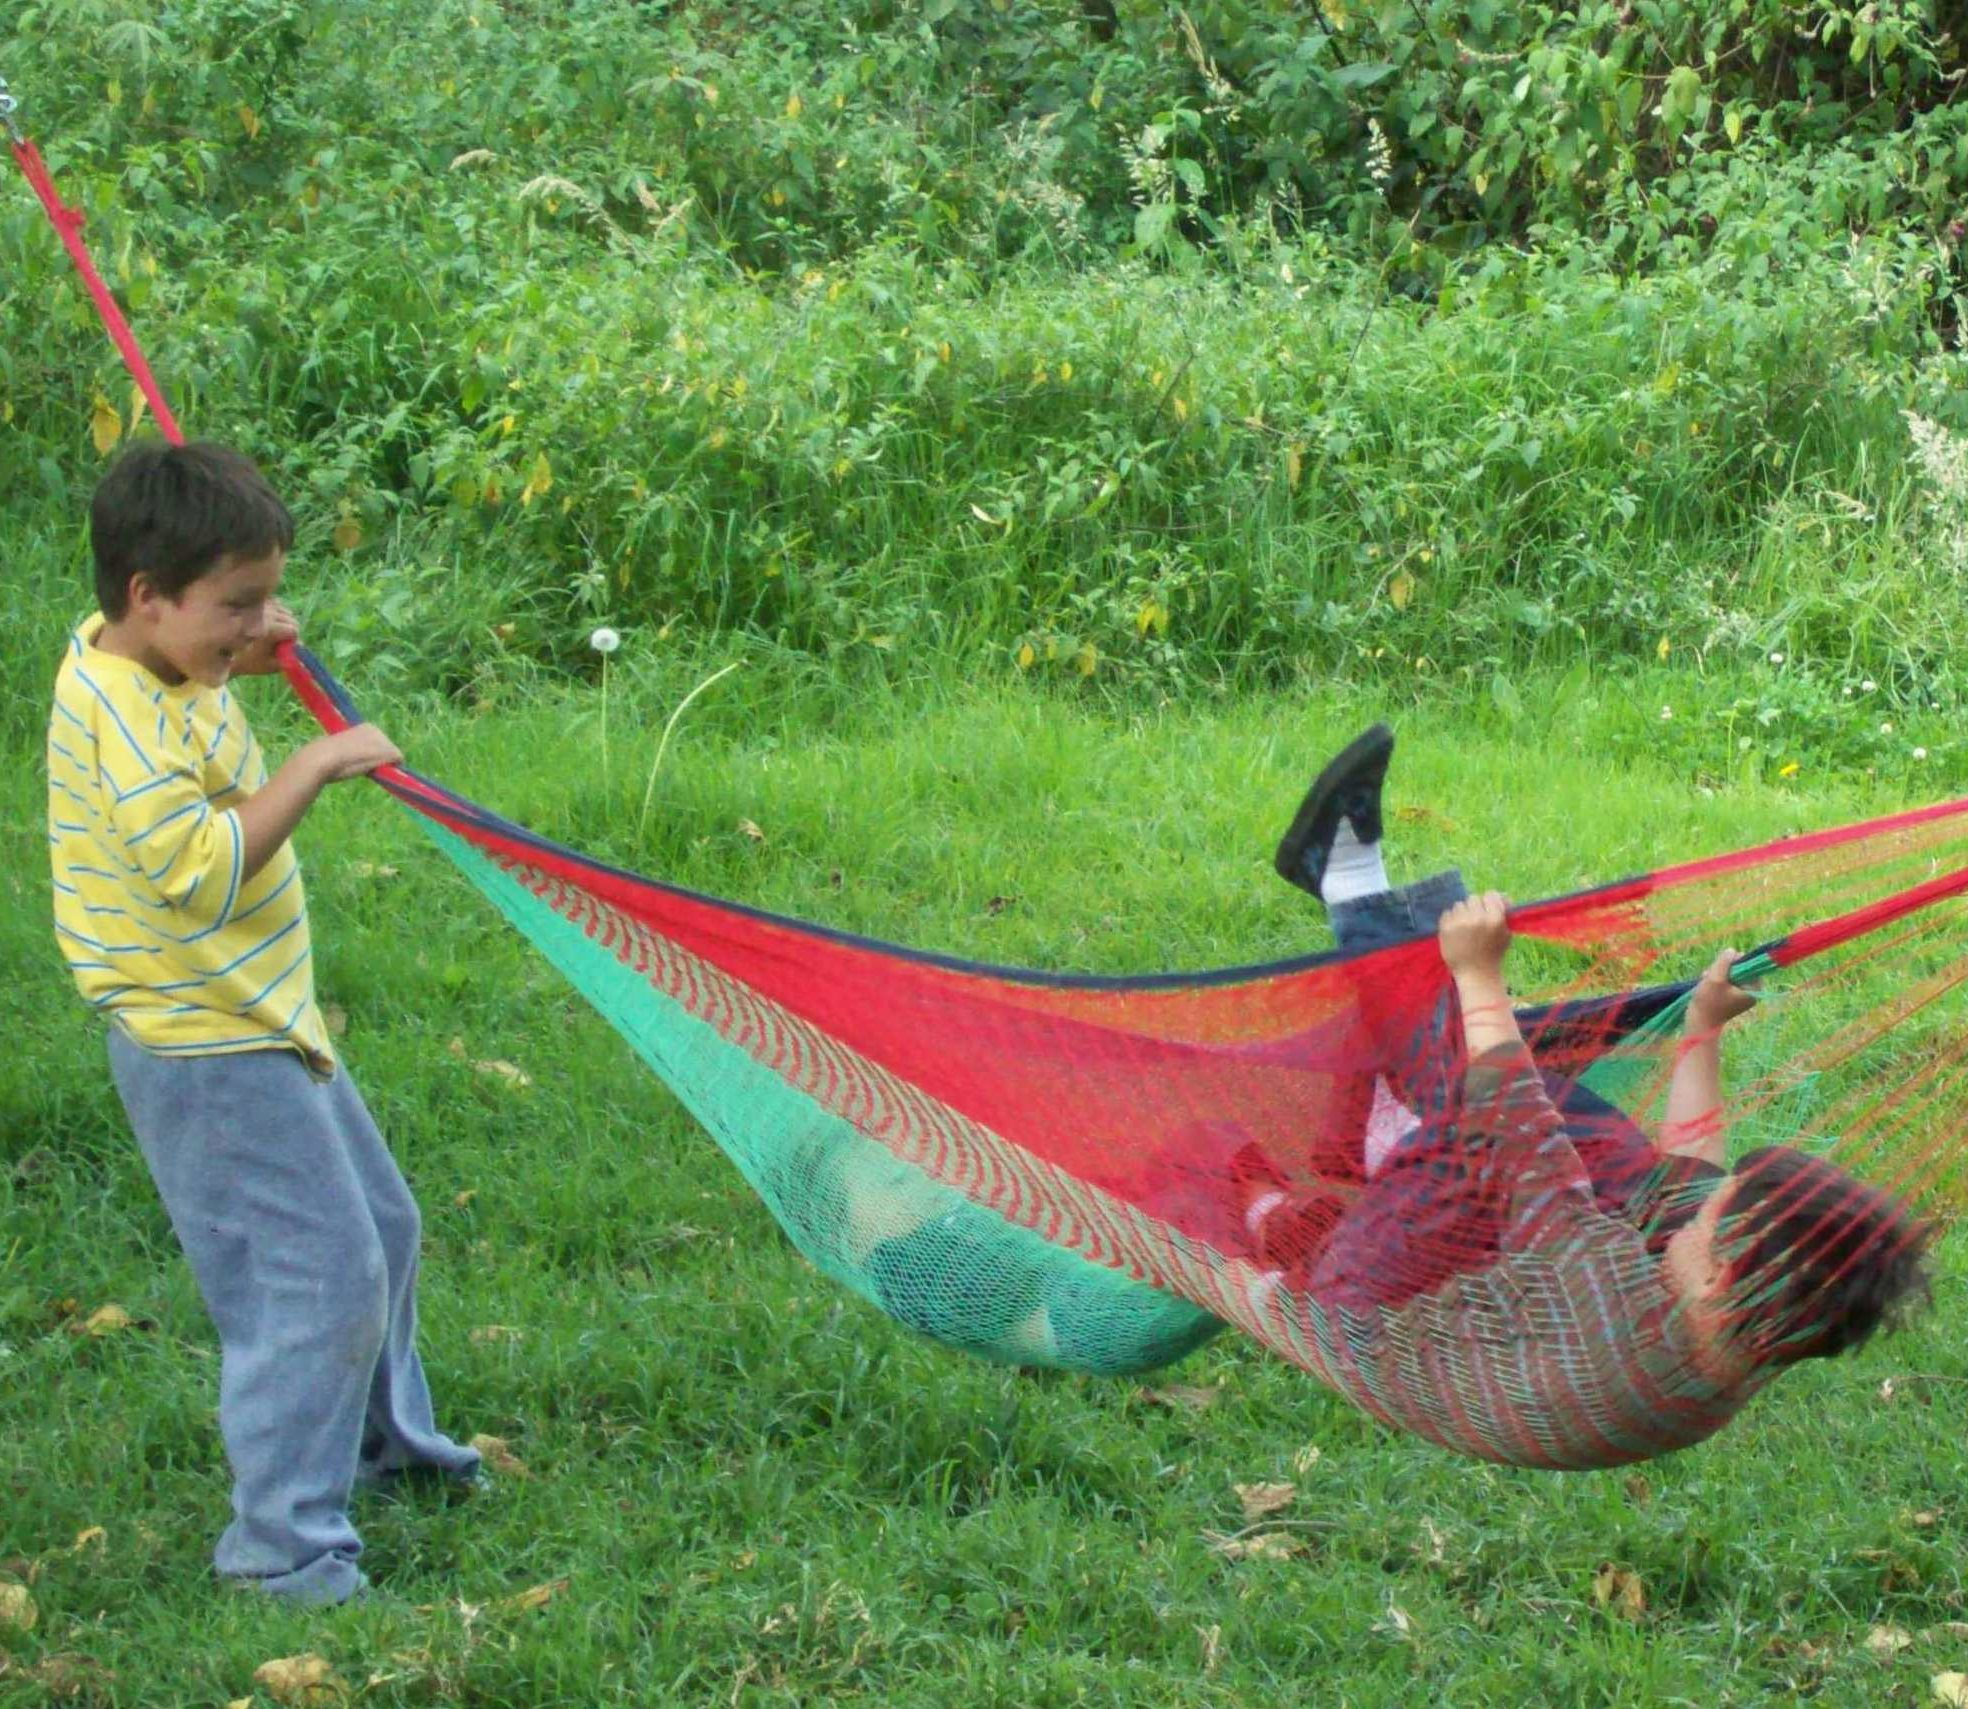 mini hammocks e1606833360947 50 Childhood Toys So Dangerous They Ended Up Banned